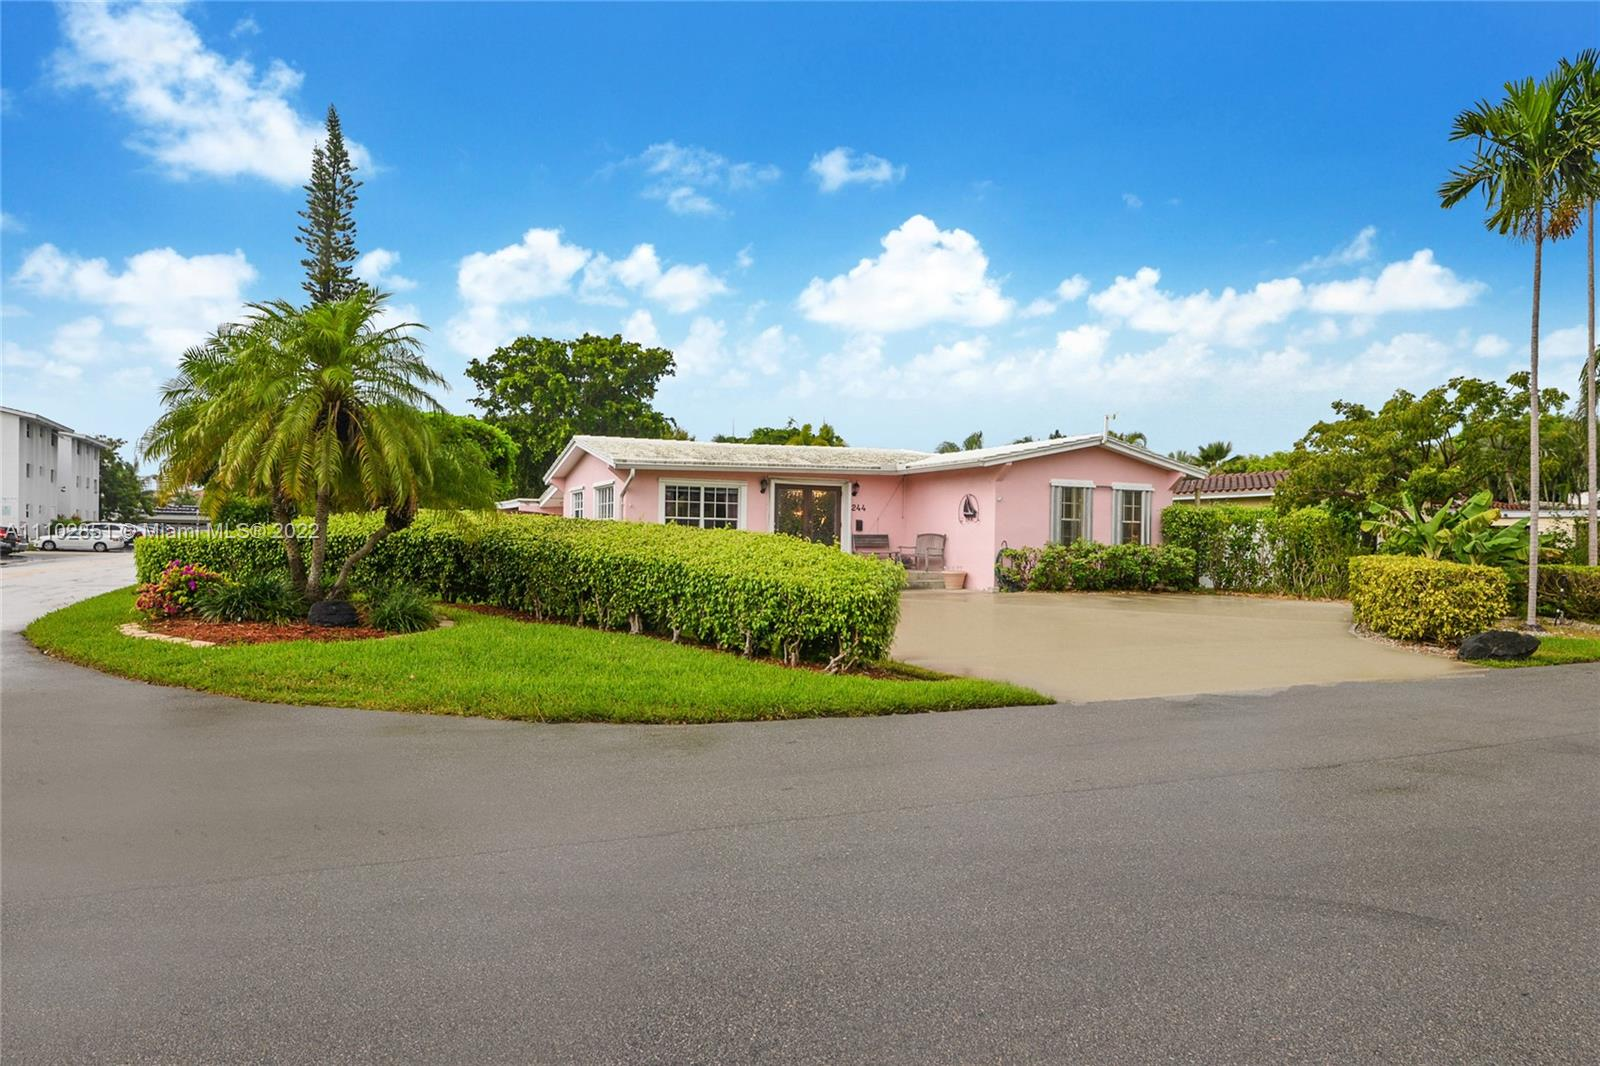 244 Hibiscus Ave, Lauderdale By The Sea, Florida 33308